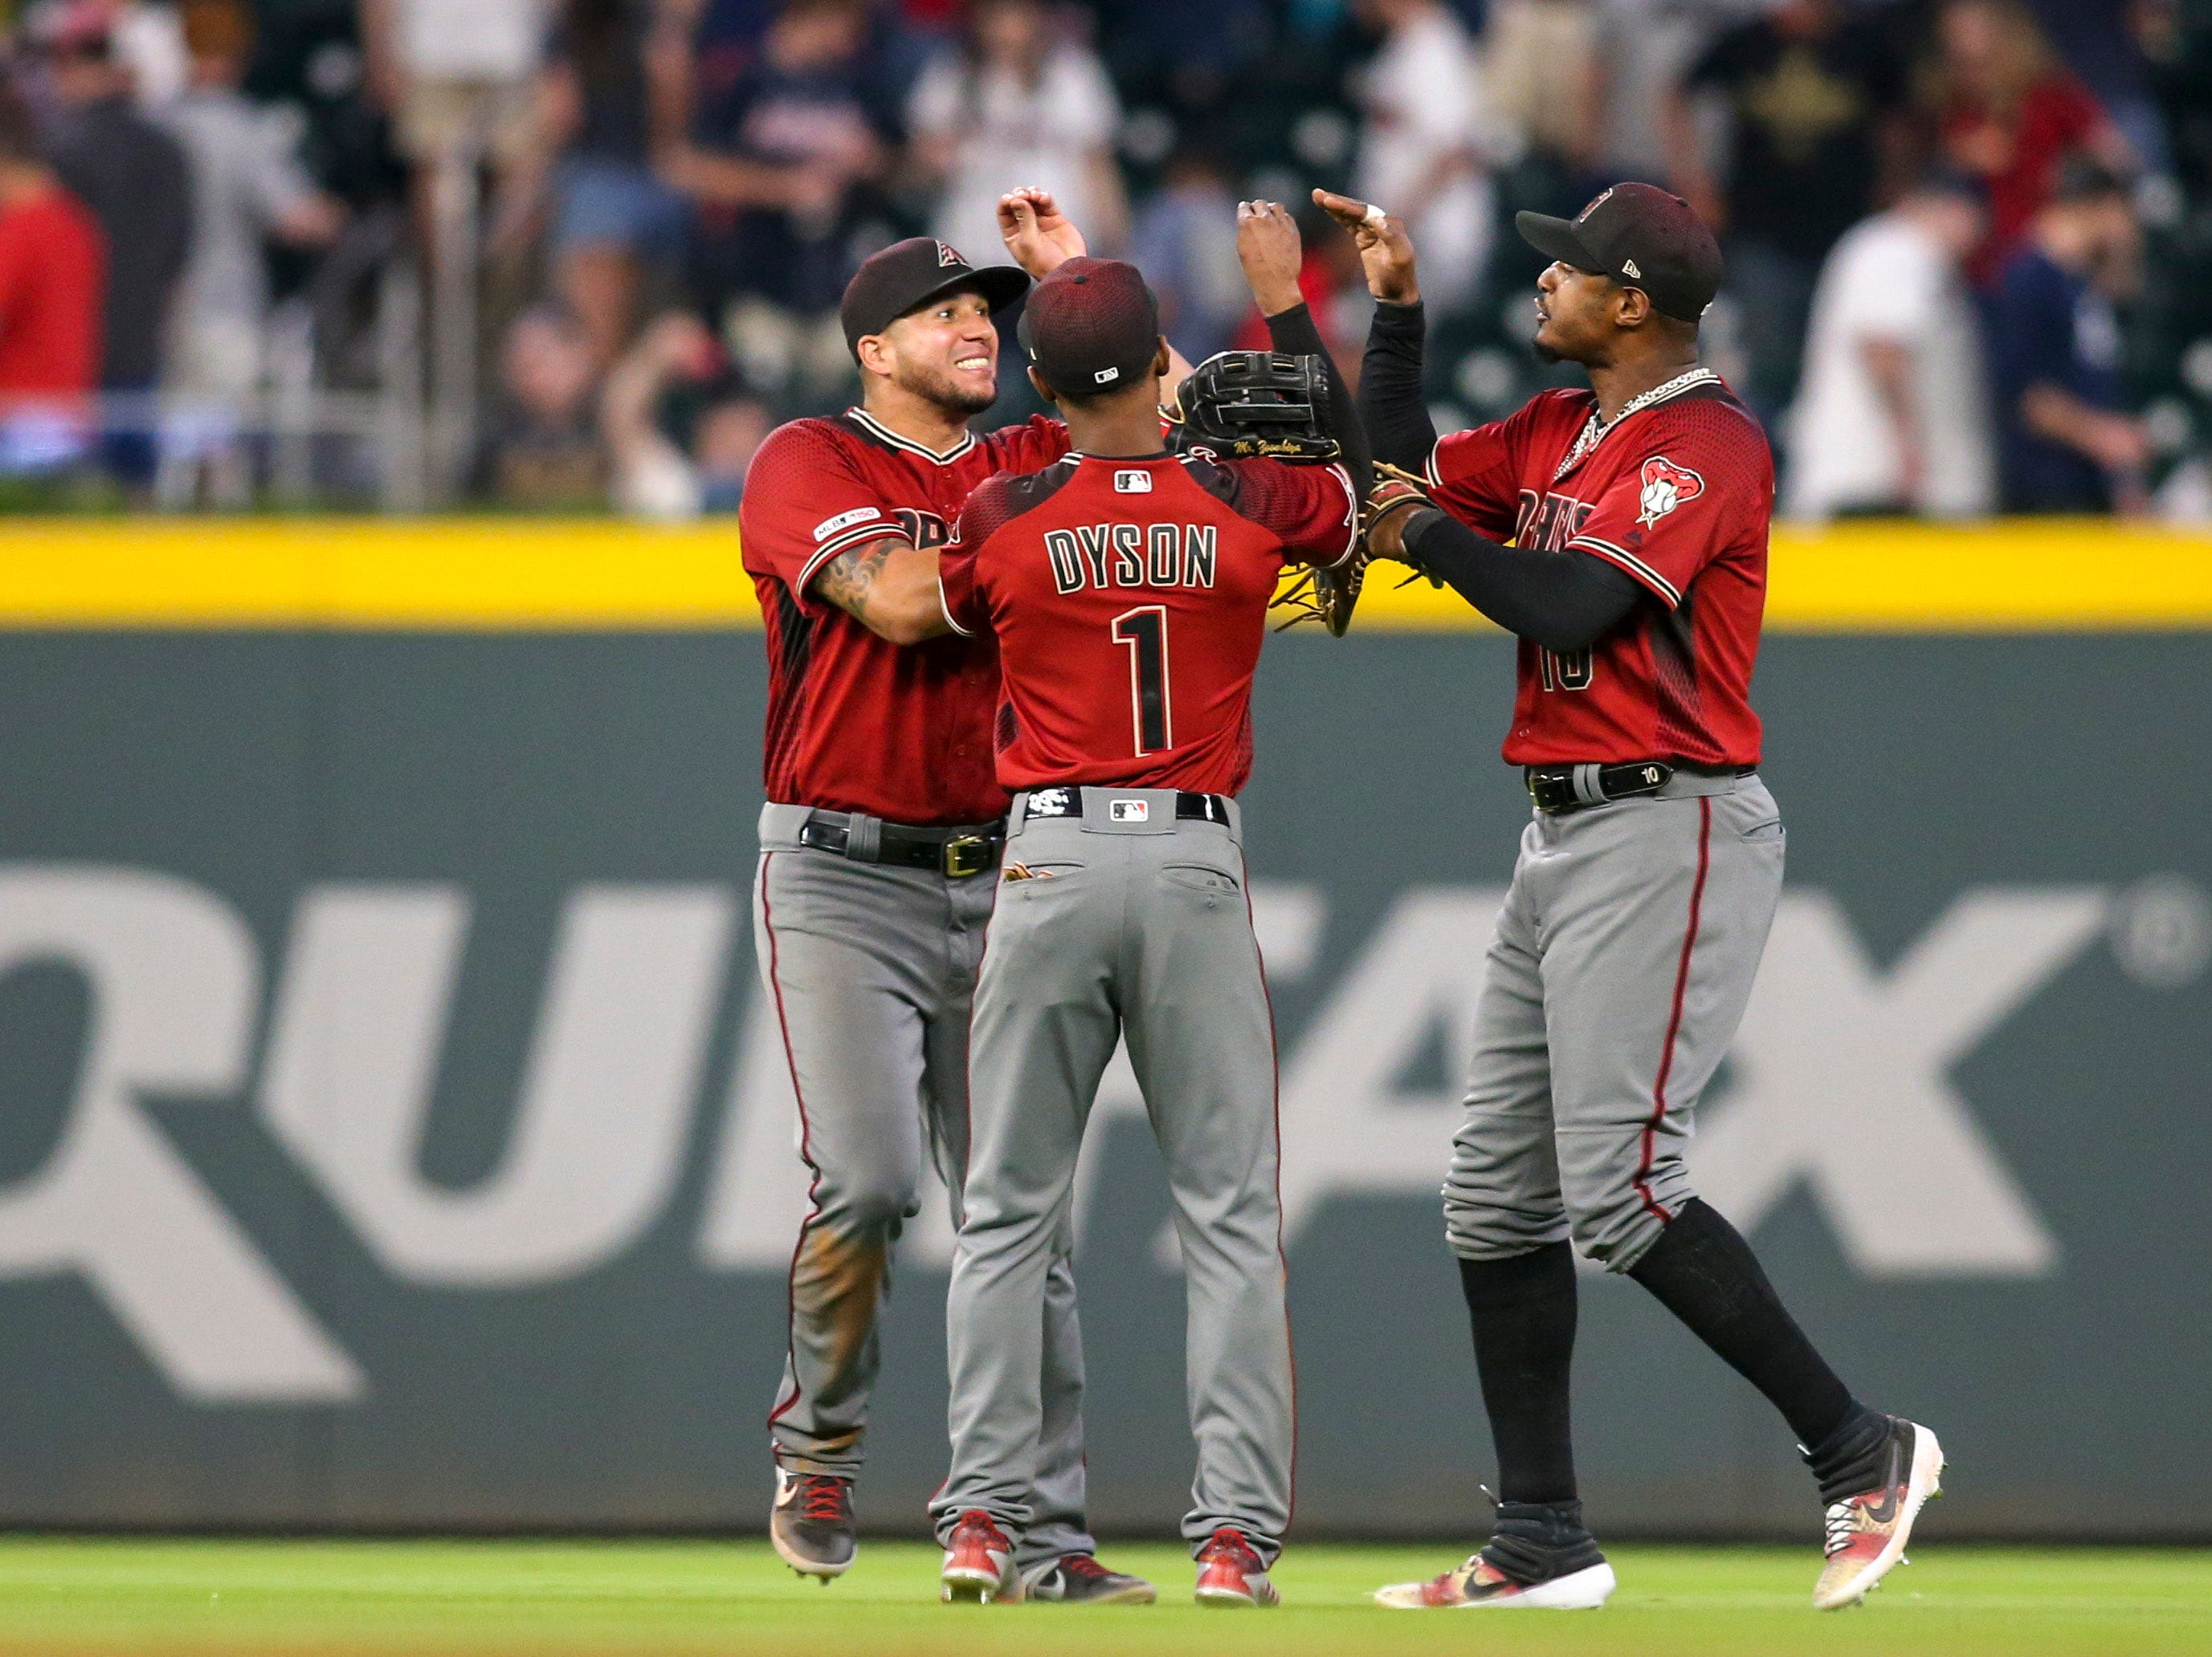 Apr 17, 2019; Atlanta, GA, USA; Arizona Diamondbacks left fielder David Peralta (6) and center fielder Jarrod Dyson (1) and right fielder Adam Jones (10) celebrate after defeating the Atlanta Braves at SunTrust Park. Mandatory Credit: Brett Davis-USA TODAY Sports